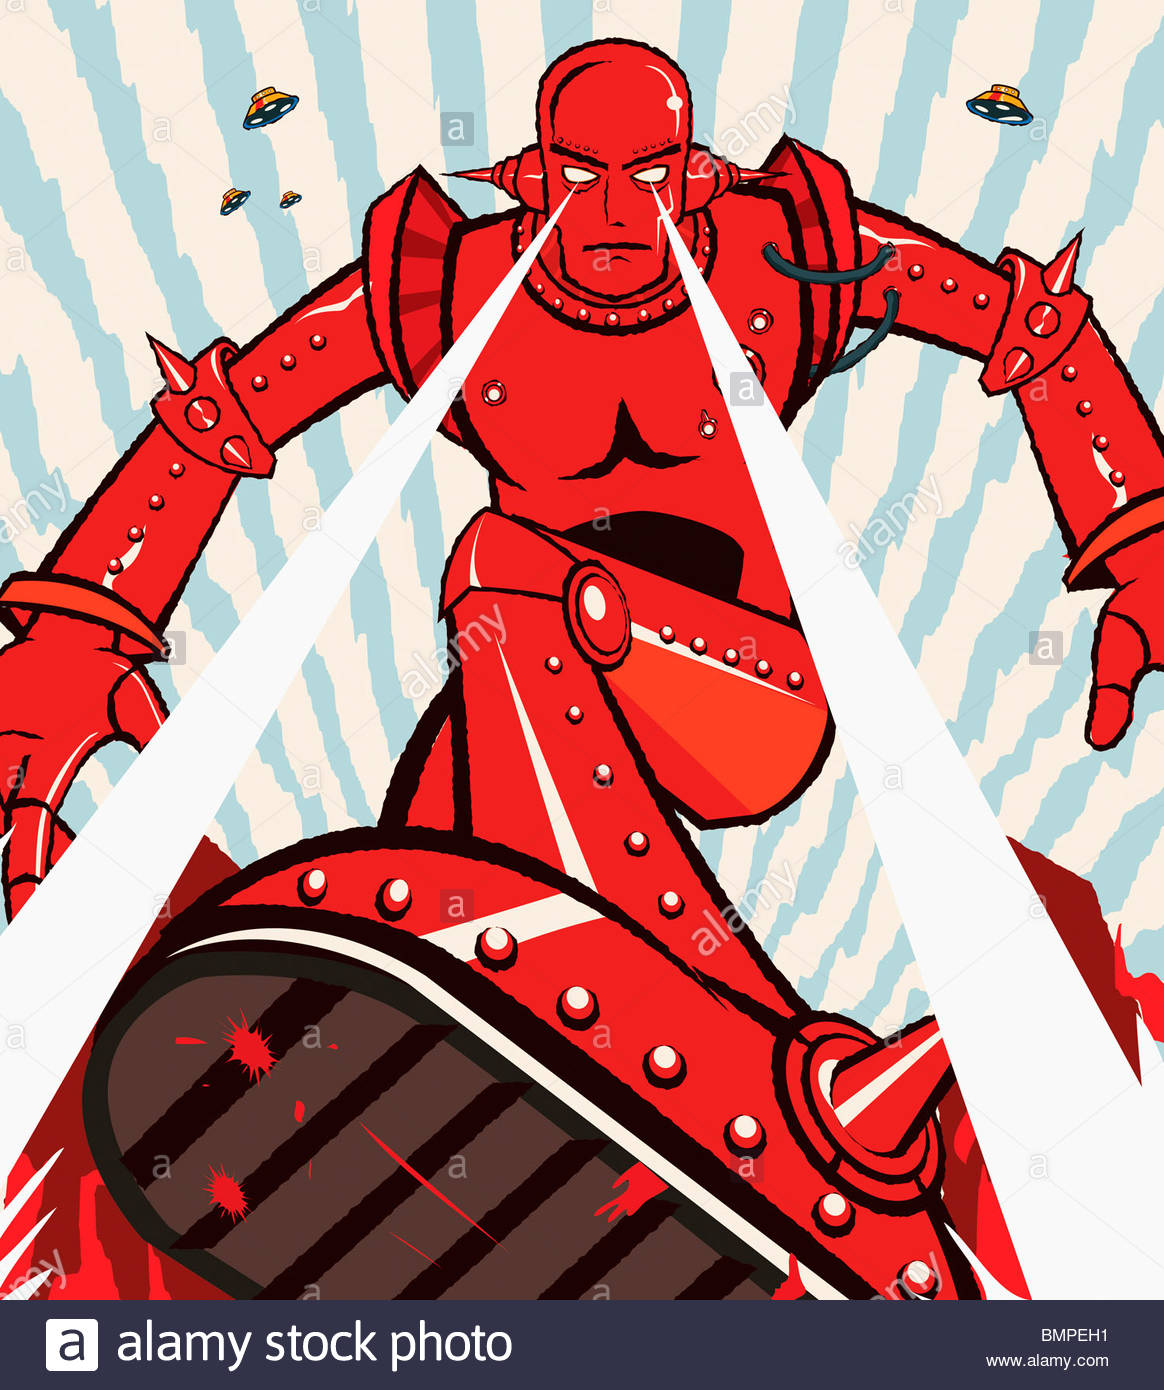 Red robot attacking with beams from eyes - Stock Image